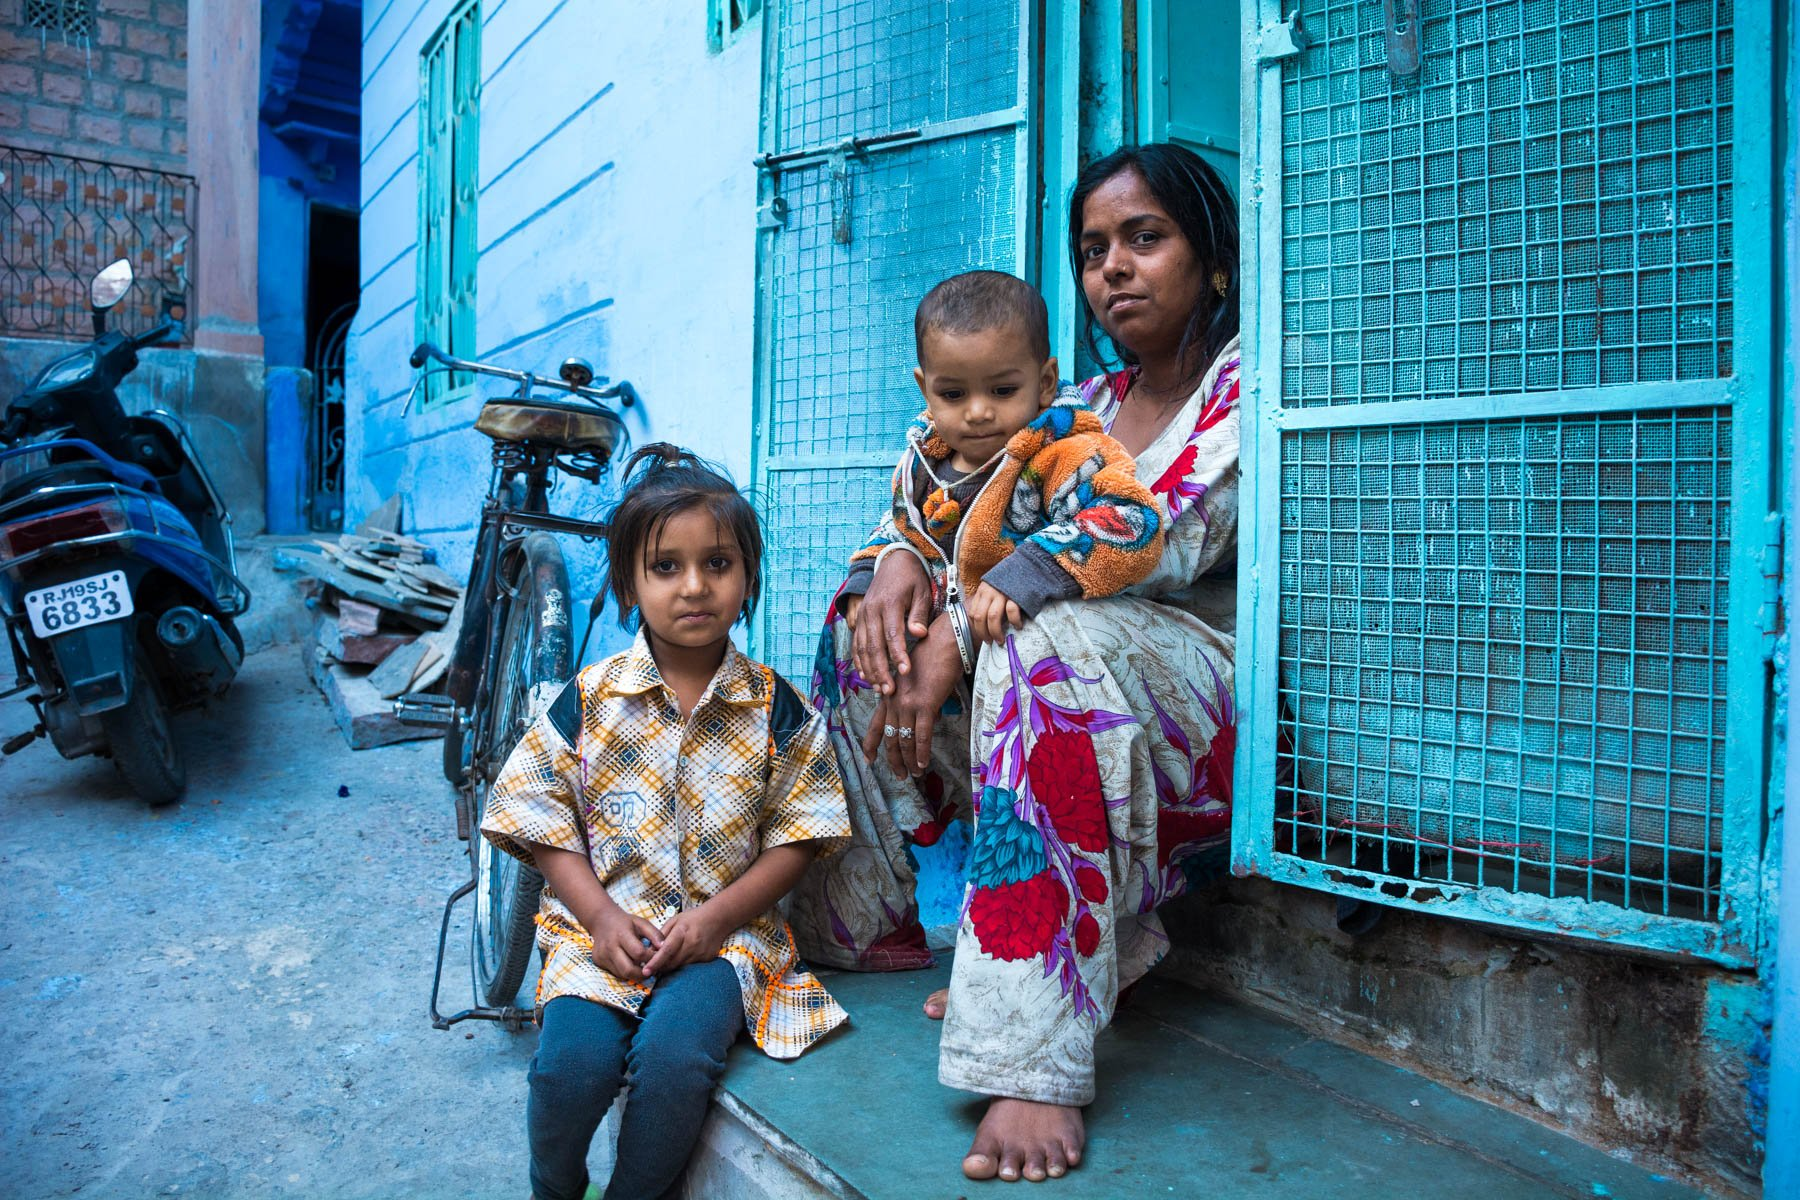 Photo essay about the streets and people of the Blue City of Jodhpur, Rajasthan, India - A local woman in front of a house in Jodhpur - Lost With Purpose